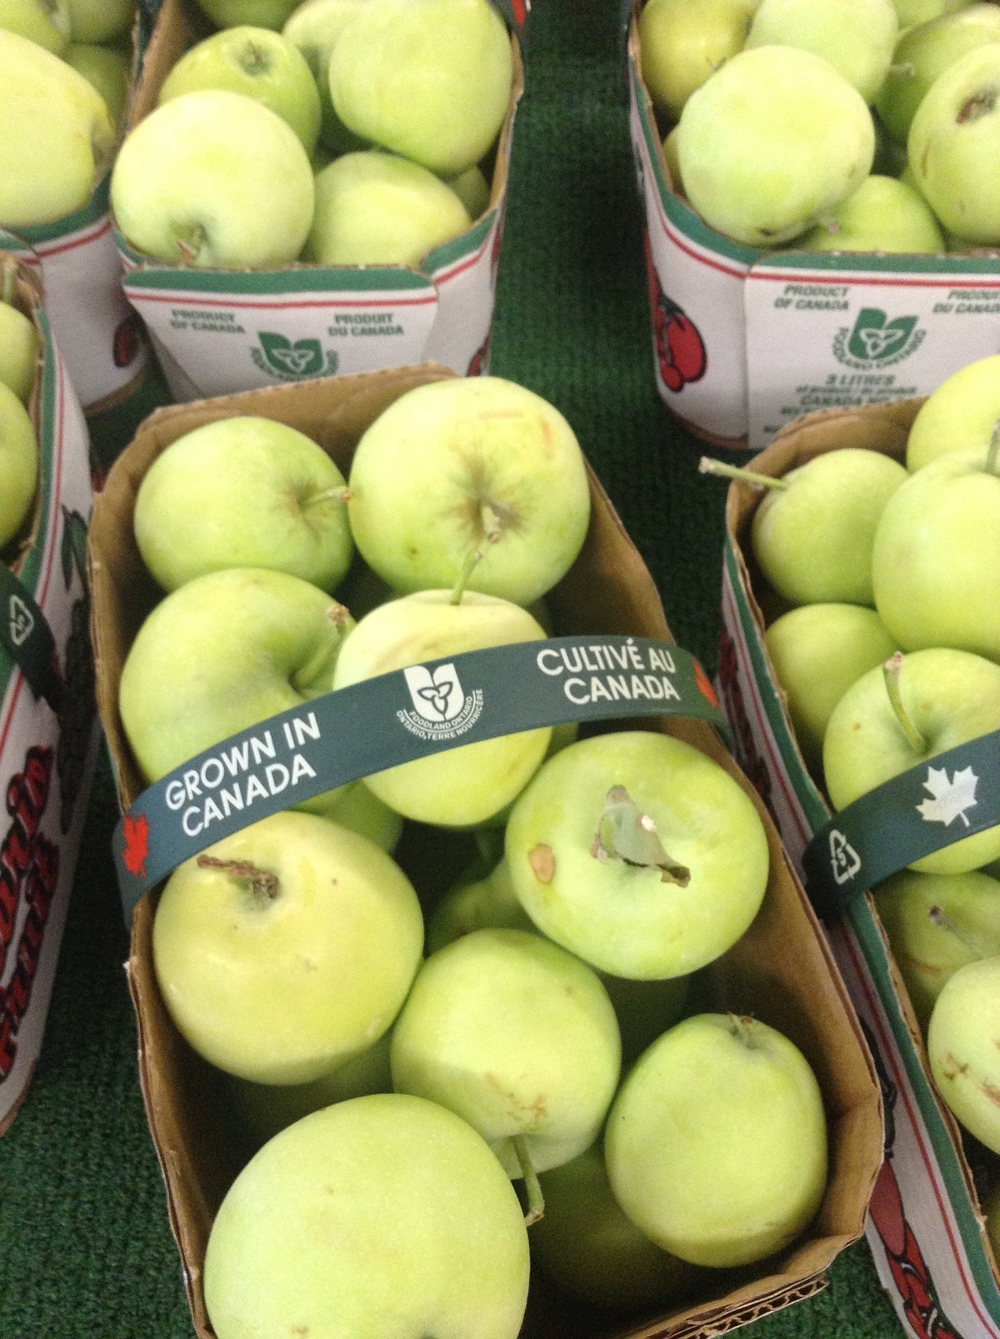 Canadian apples